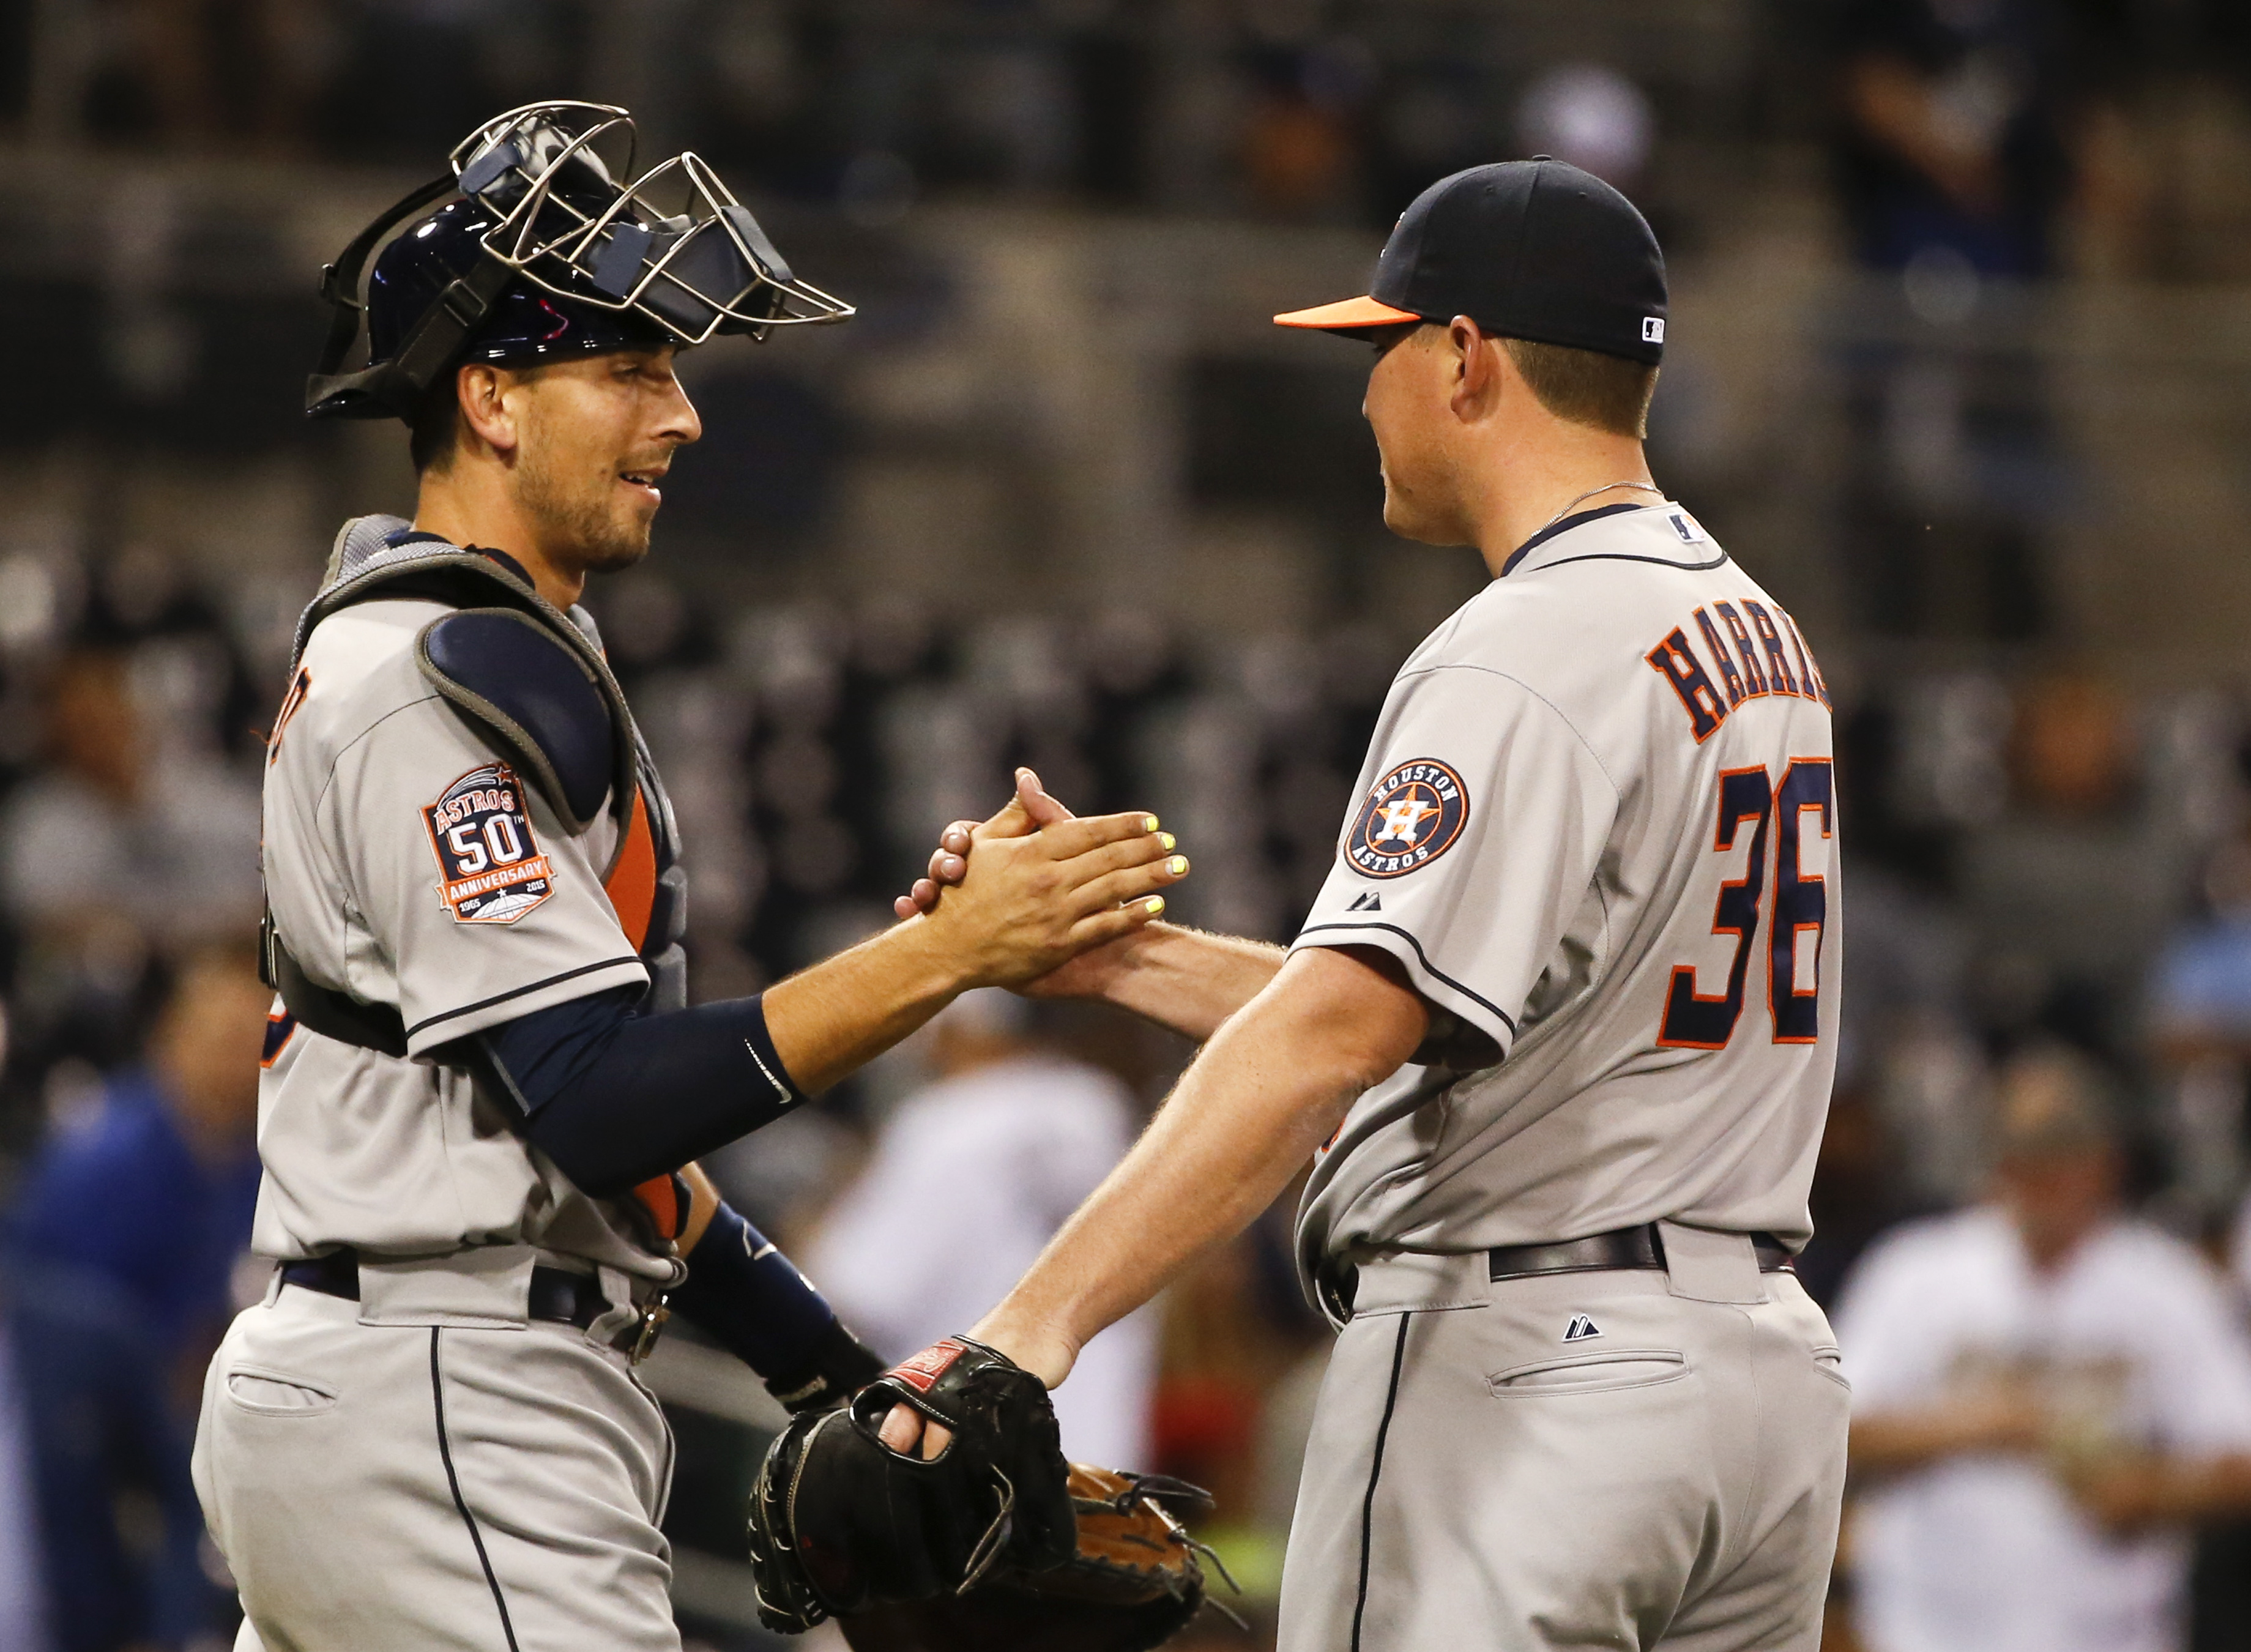 Houston Astros relief pitcher Will Harris and catcher Jason Castro congratulate each other after the Astros 9-4 victory over the San Diego Padres in a baseball game Monday, April 27, 2015 in San Diego.   (AP Photo/Lenny Ignelzi)